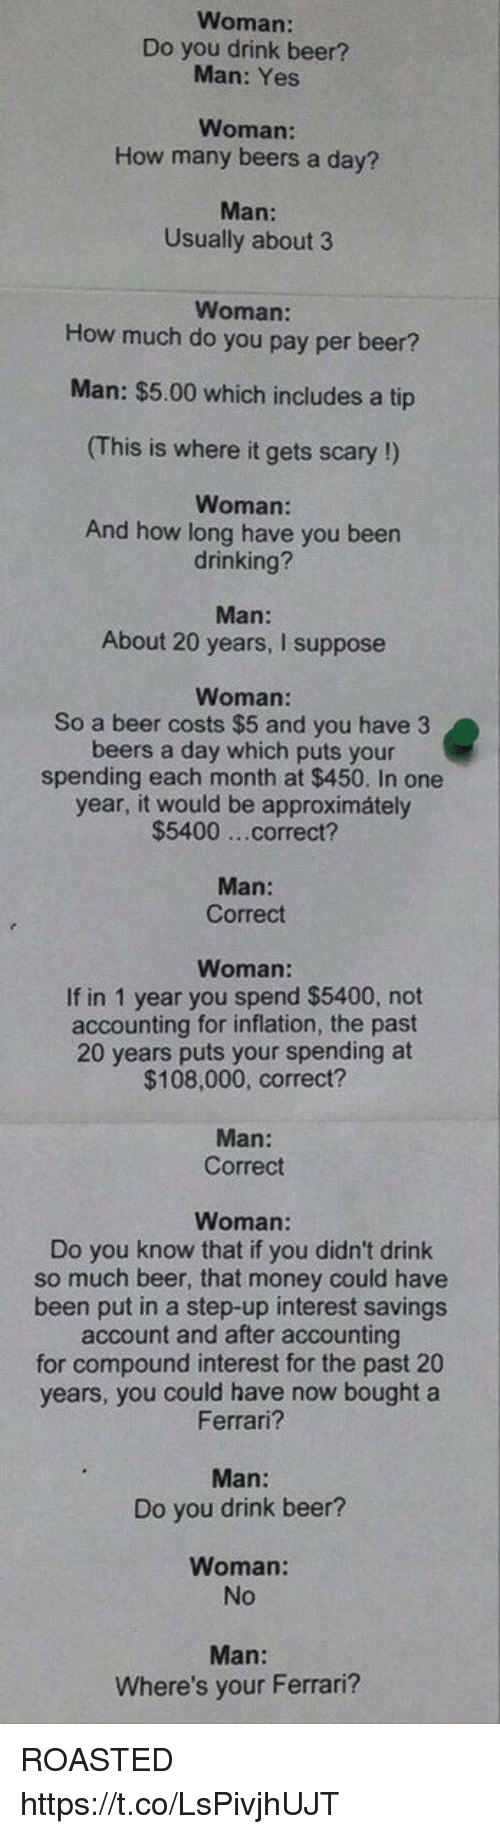 step ups: Woman:  Do you drink beer?  Man: Yes  Woman  How many beers a day?  Man:  Usually about 3  Woman:  How much do you pay per beer?  Man: $5.00 which includes a tip  (This is where it gets scary !)  Woman:  And how long have you been  drinking?  Man:  About 20 years, I suppose  Woman:  So a beer costs $5 and you have 3  beers a day which puts your  spending each month at $450. In one  year, it would be approximátely  $5400 ...correct?  Man:  Correct  Woman:  If in 1 year you spend $5400, not  accounting for inflation, the past  20 years puts your spending at  $108,000, correct?  Man:  Correct  Woman  Do you know that if you didn't drink  so much beer, that money could have  been put in a step-up interest savings  account and after accounting  for compound interest for the past 20  years, you could have now bought a  Ferrari?  Man:  Do you drink beer?  Woman:  No  Where's your Ferrari? ROASTED https://t.co/LsPivjhUJT